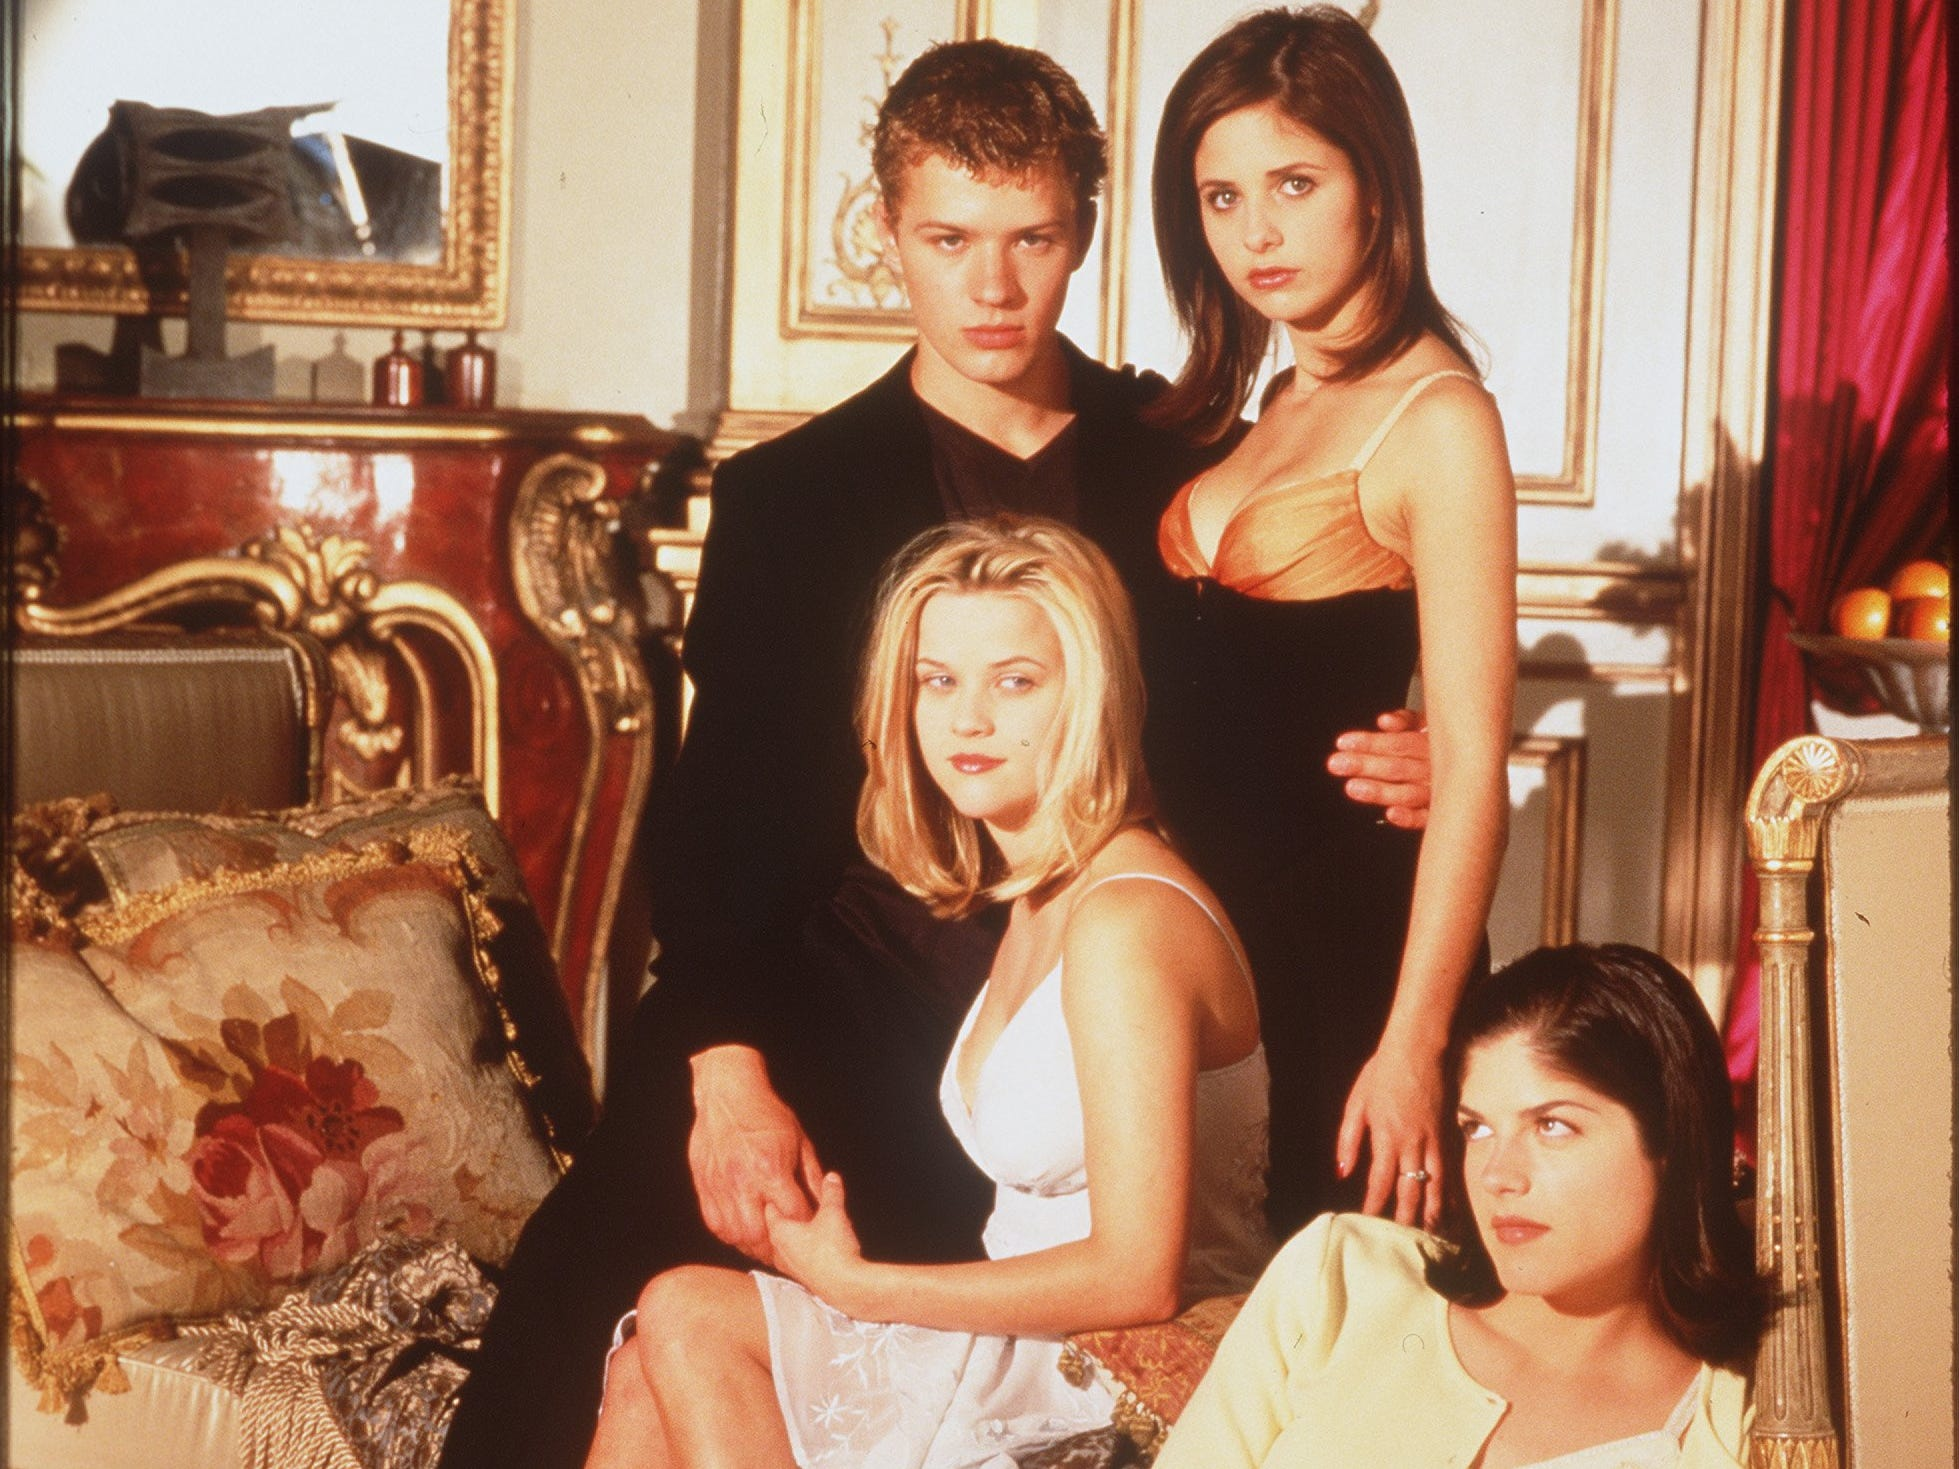 'Cruel Intentions': Ryan Phillippe, Sarah Michelle Gellar, Selma Blair and Reese Witherspoon in the 1999 teen adaptation of 'Dangerous Liaisons.' A lot of the style but with less critical acclaim. It did, however, earn the stars legions of young fans.